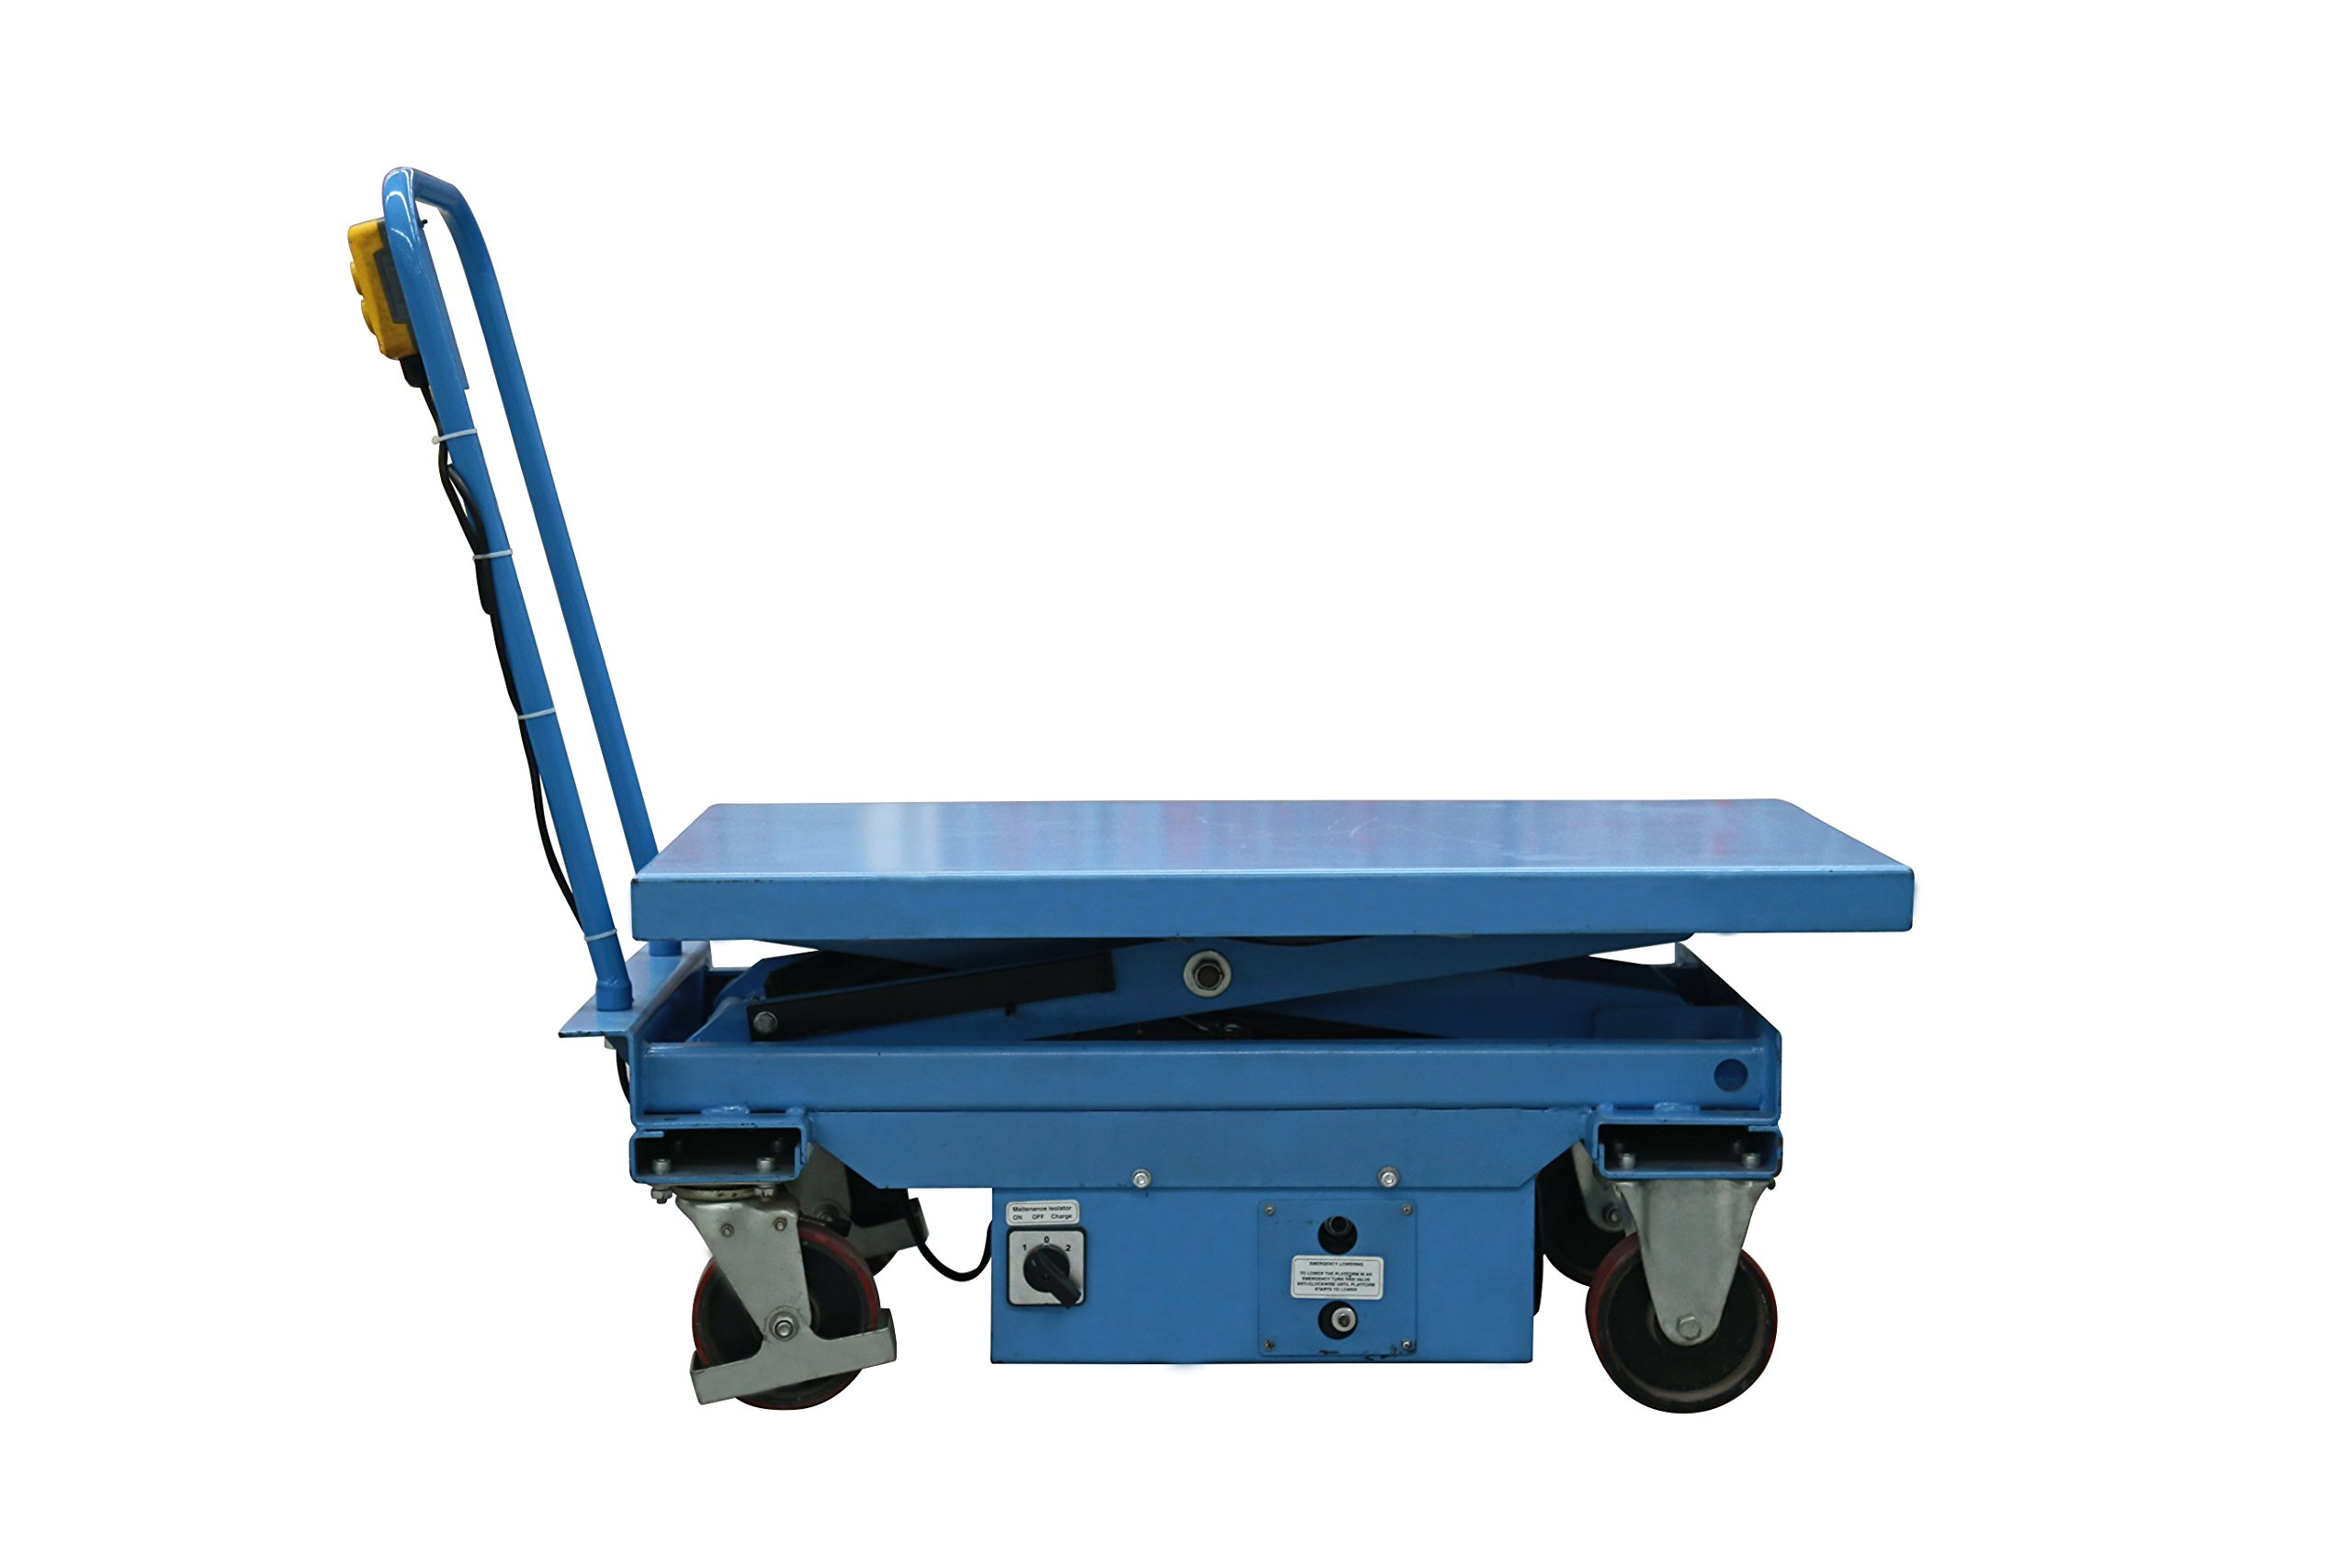 Eoslift Electric / Powered Heavy Duty Mobile Hydraulic Dual Scissor Lift Cart / Table 1650 Lb. Capacity Durable and Reliable Suitable For Warehouse, Factory, Shop or Office.